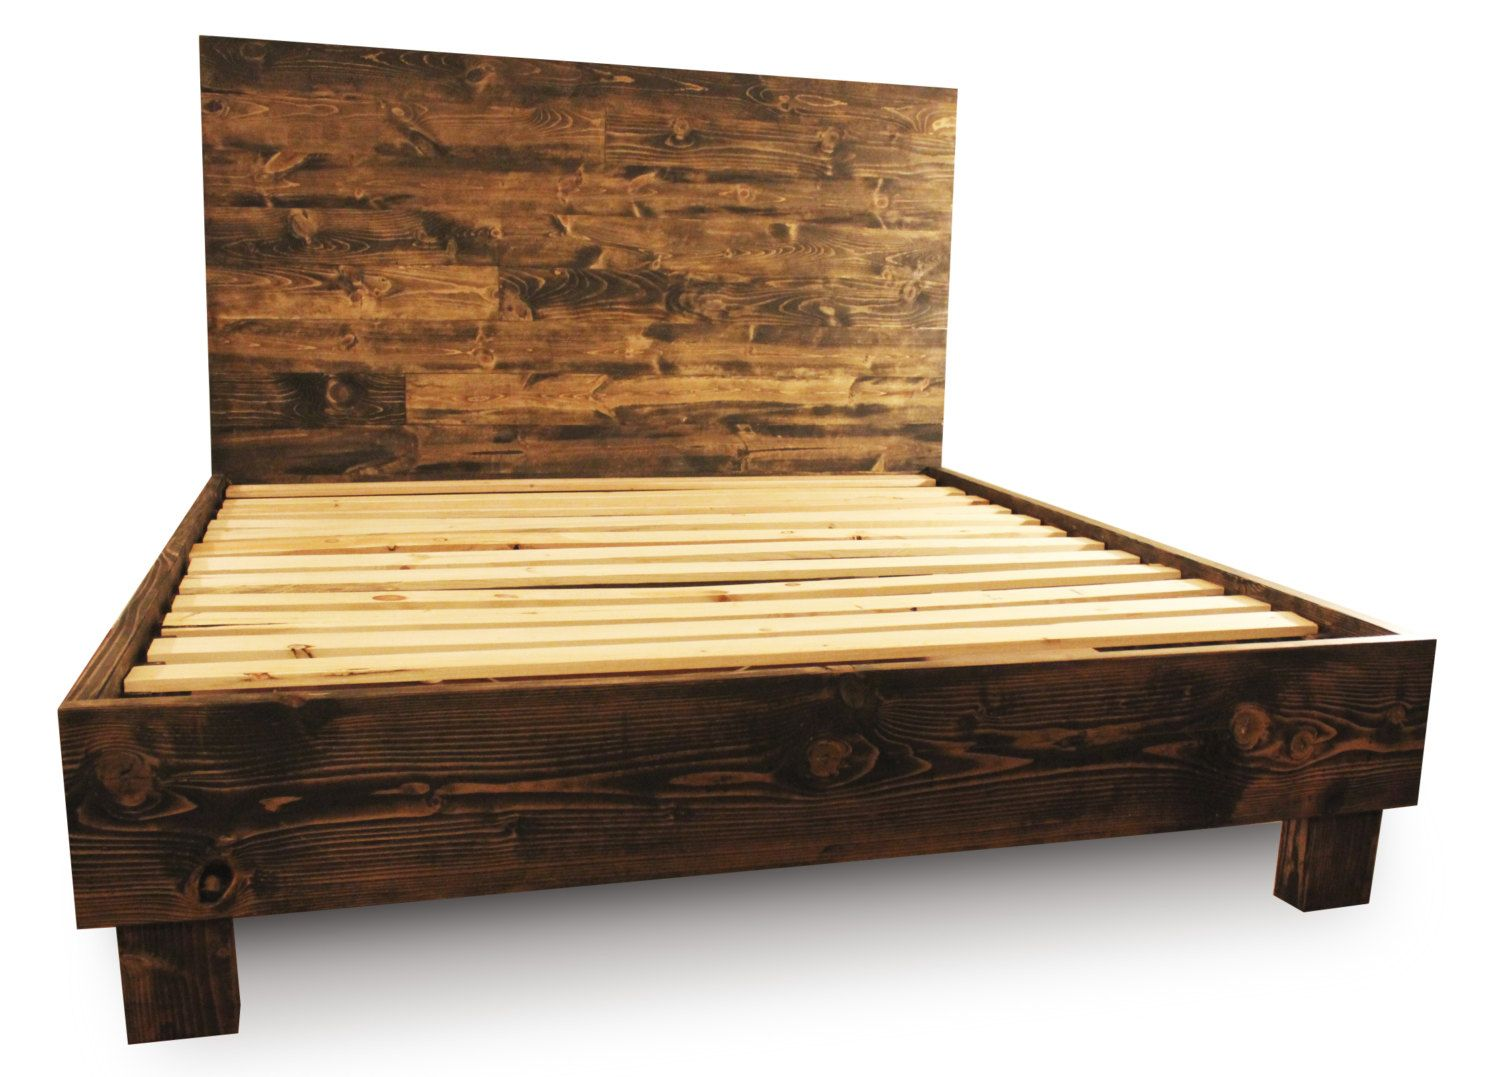 rustic wood platform bed frame and headboard farm house reclaimed style - Solid Wood Platform Bed Frame